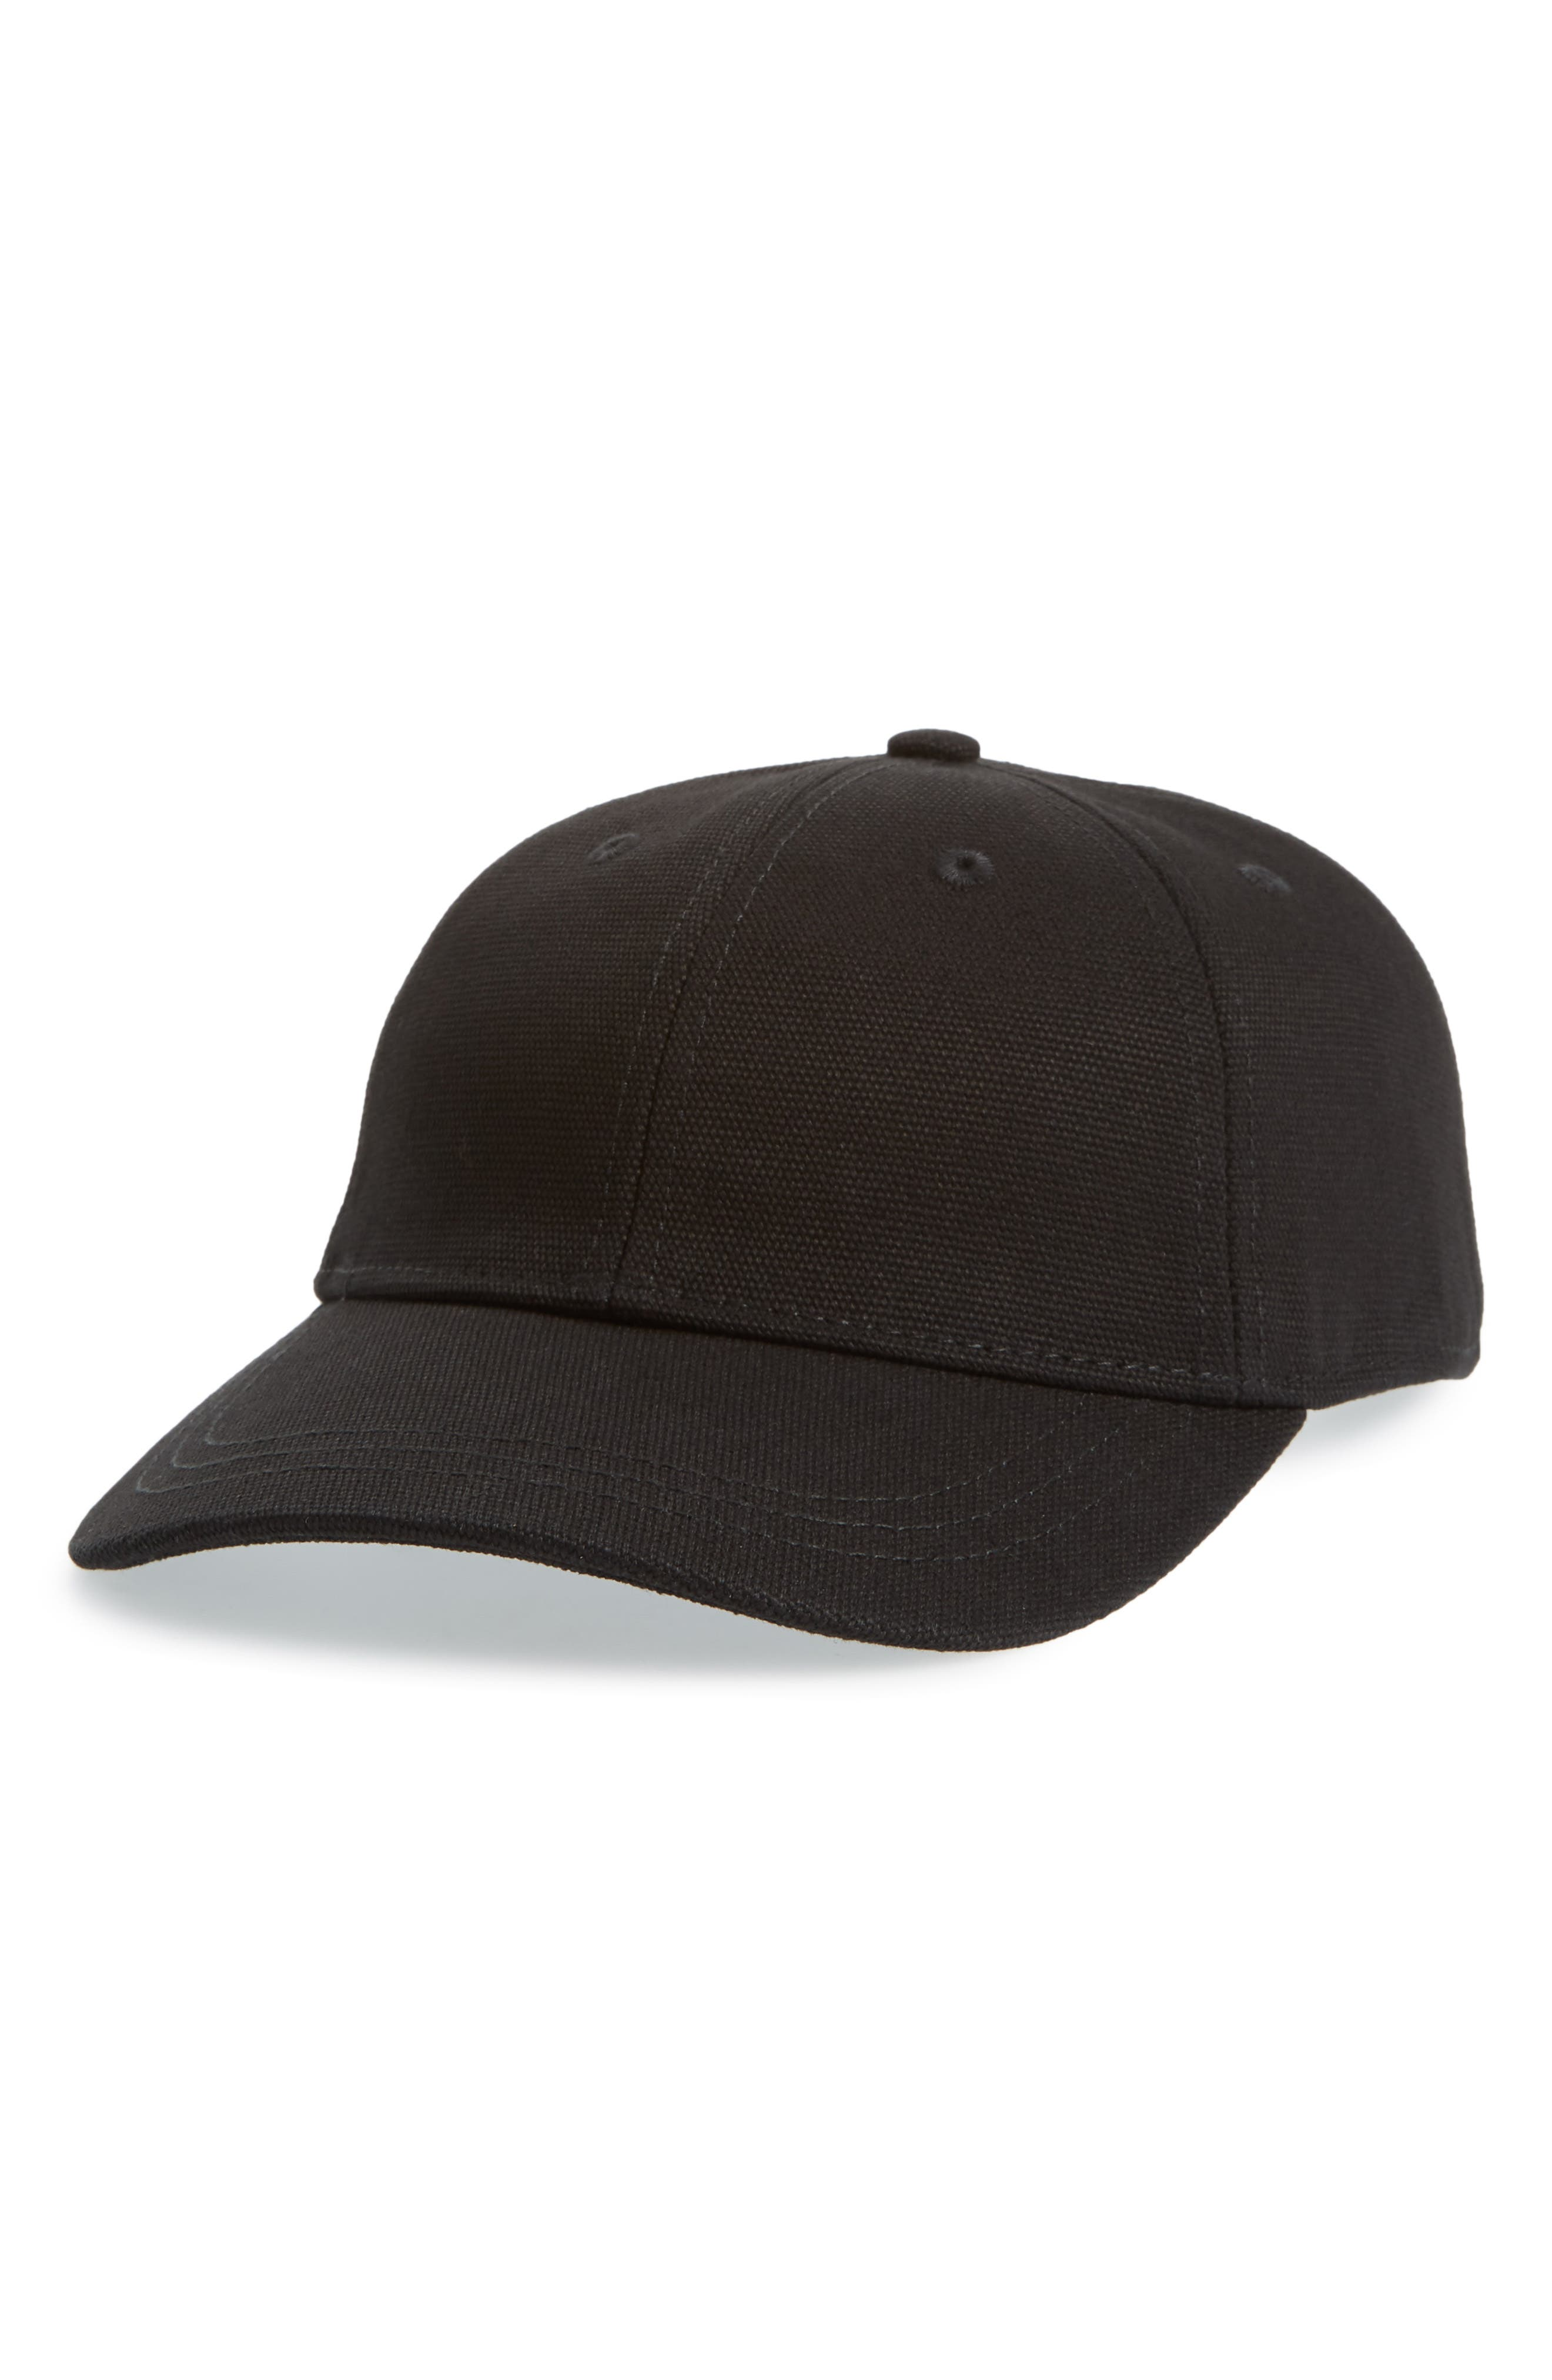 Embroidered Ciao for Now Canvas Baseball Cap,                         Main,                         color, 001